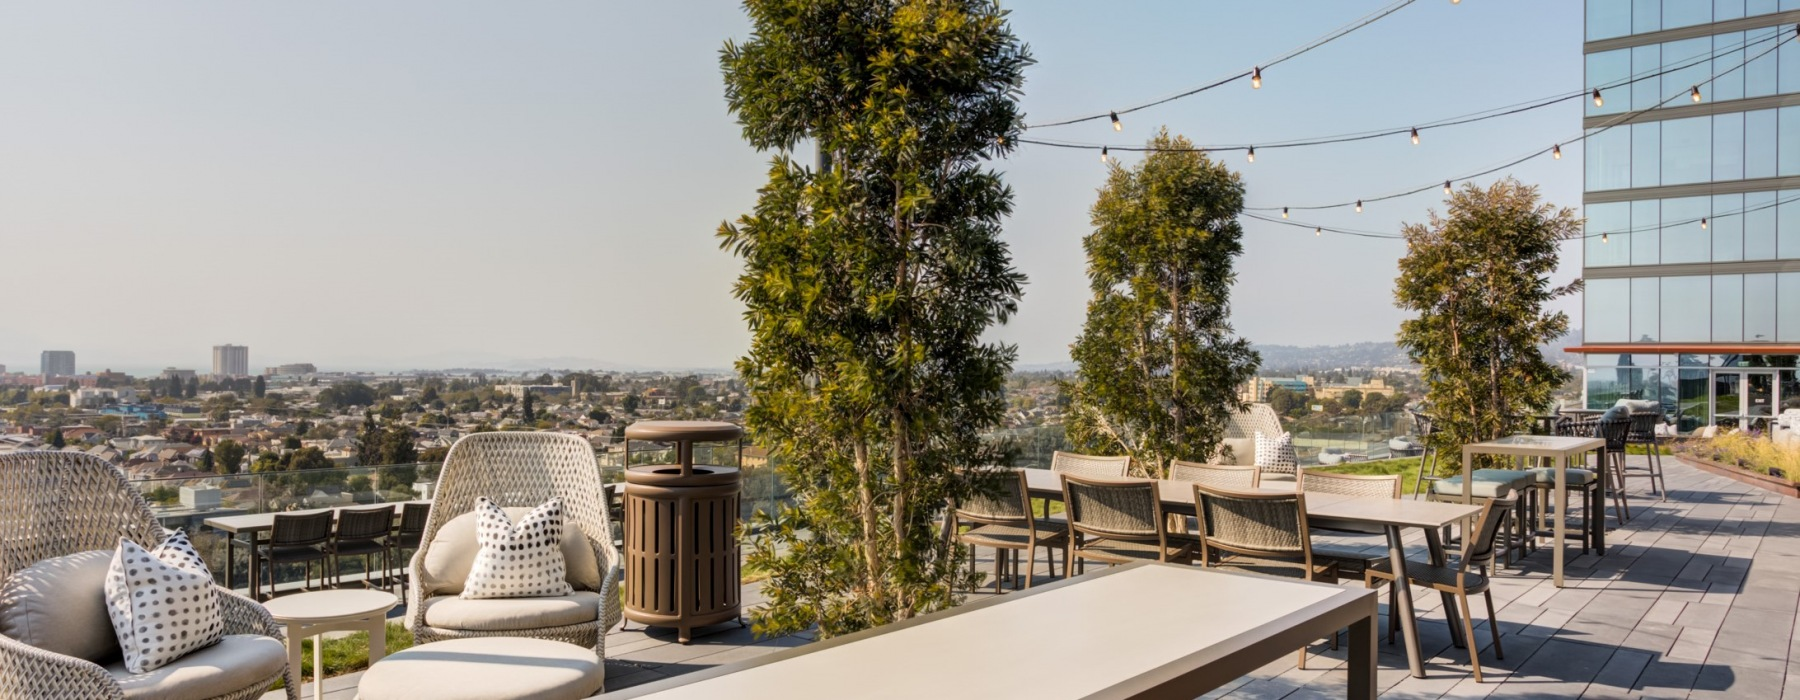 Seating areas overlooking the bay area